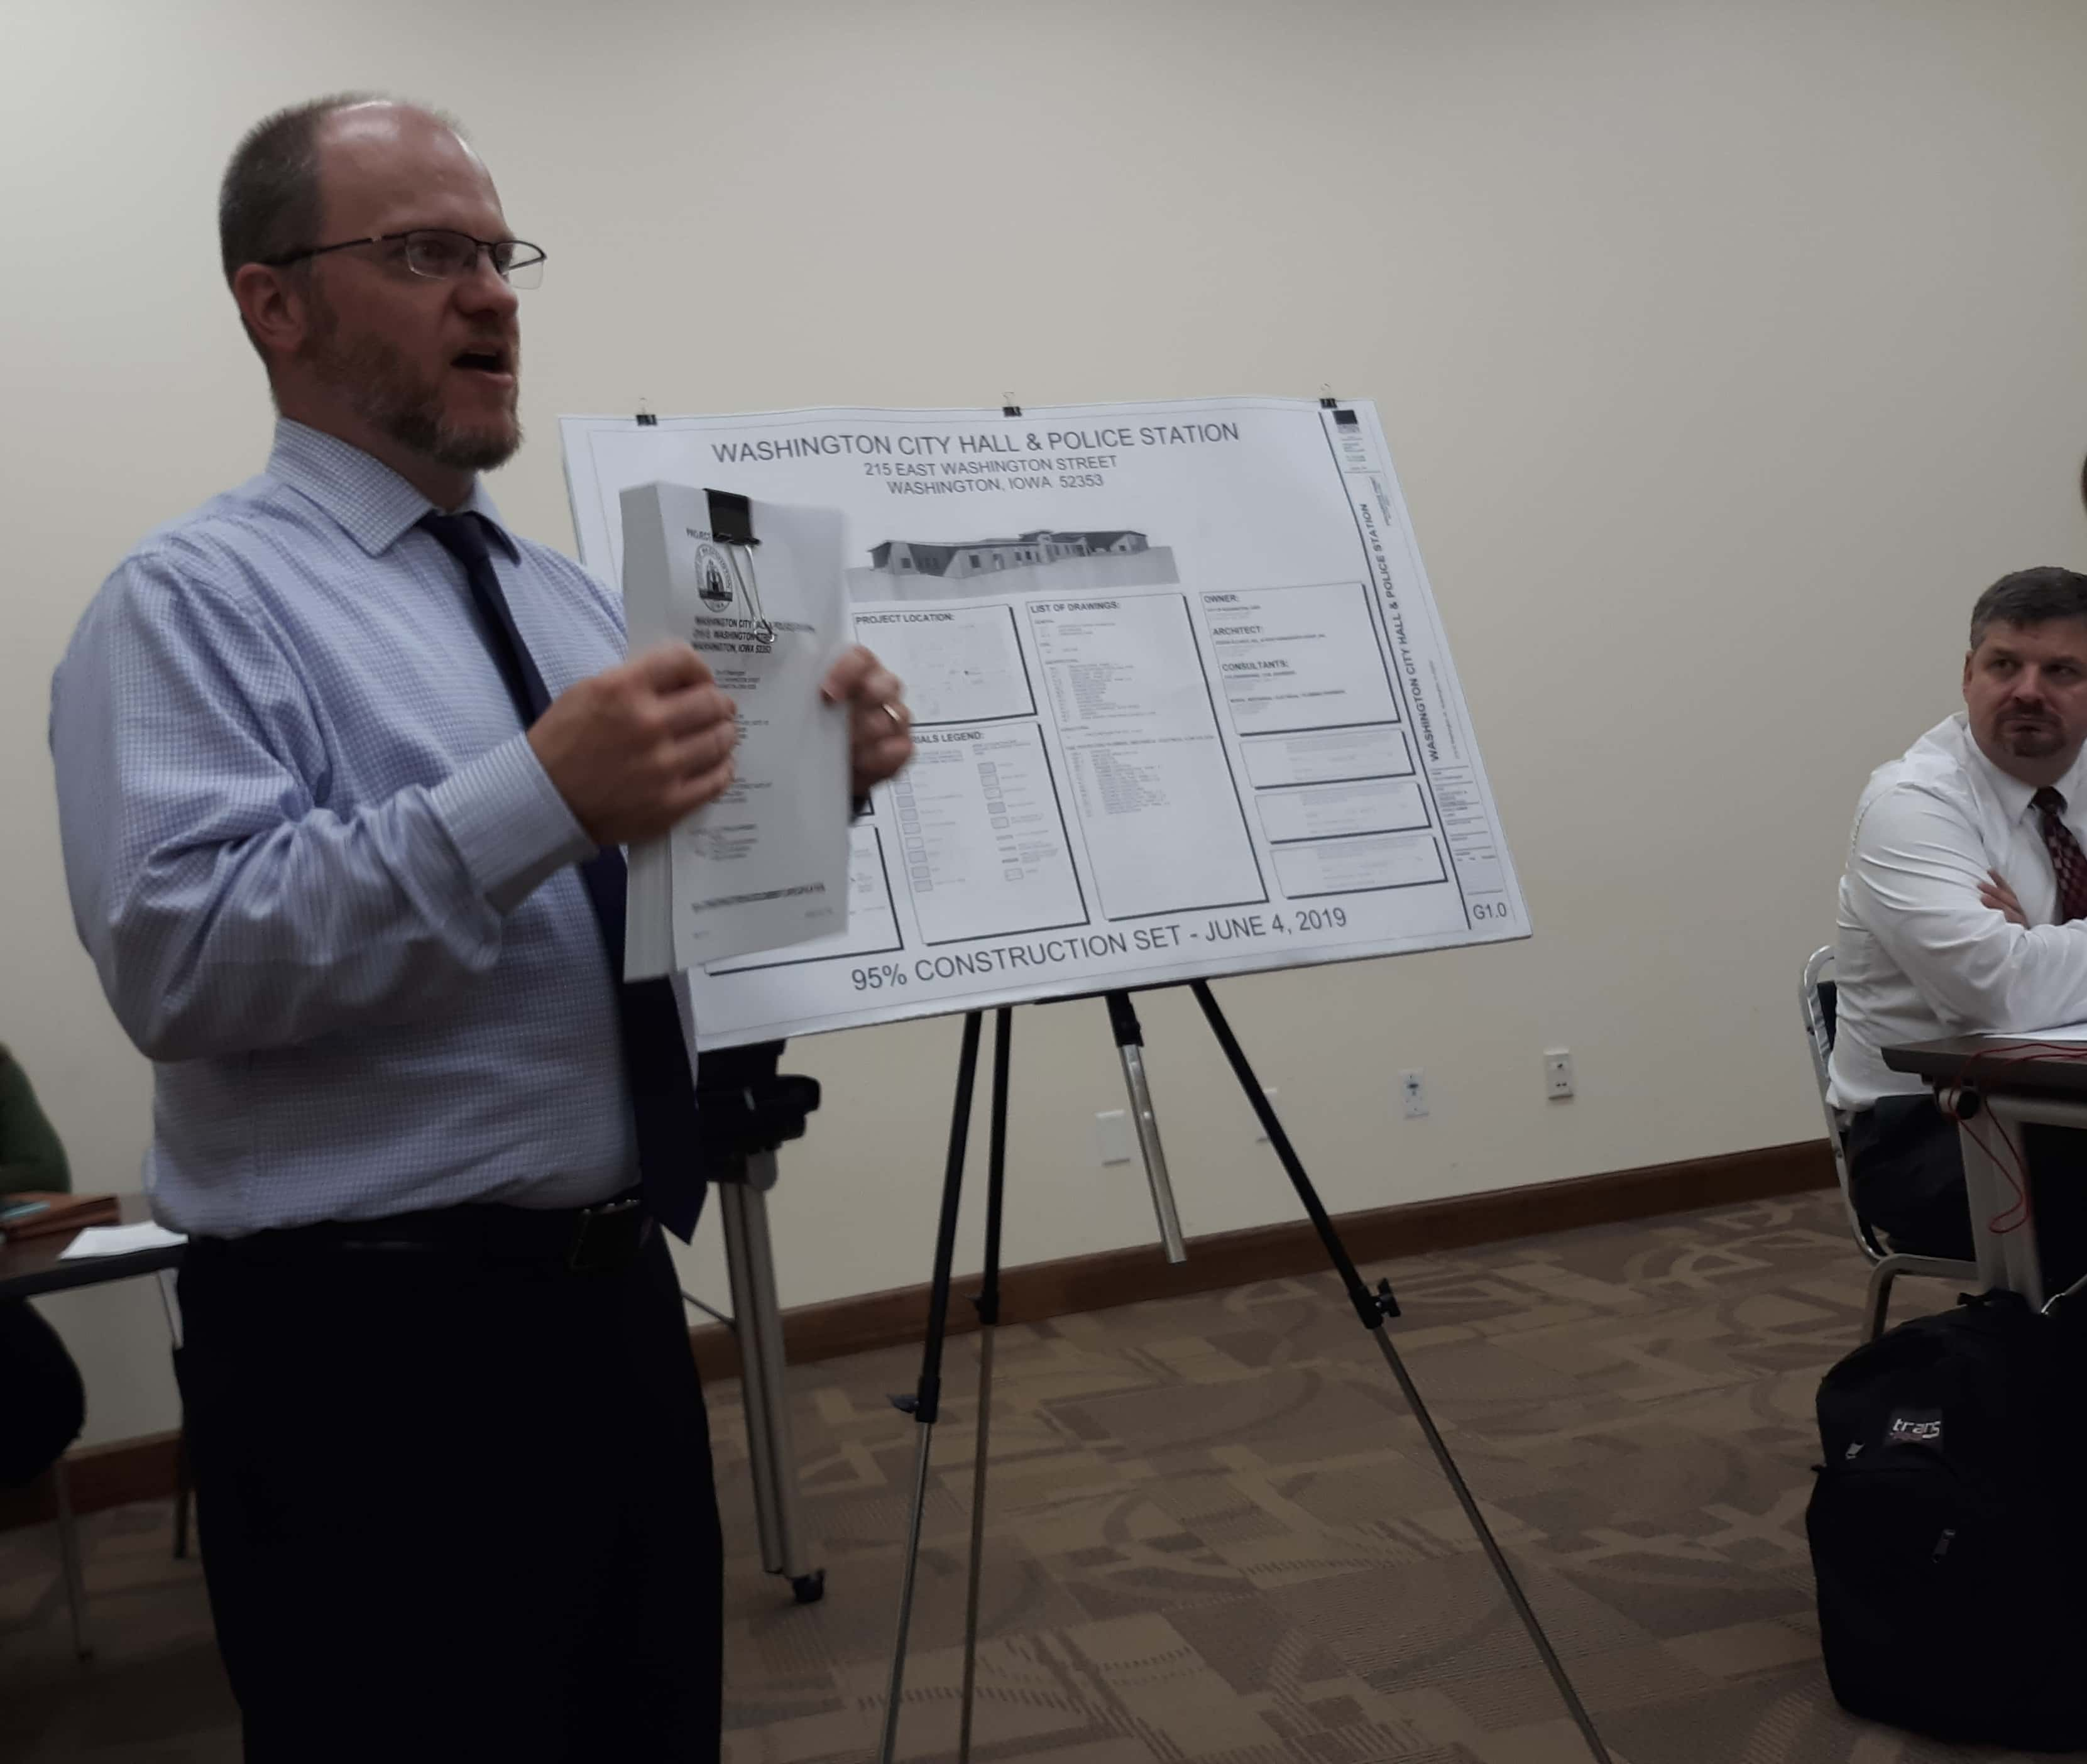 Washington City Hall and Police Station Project Bids to be